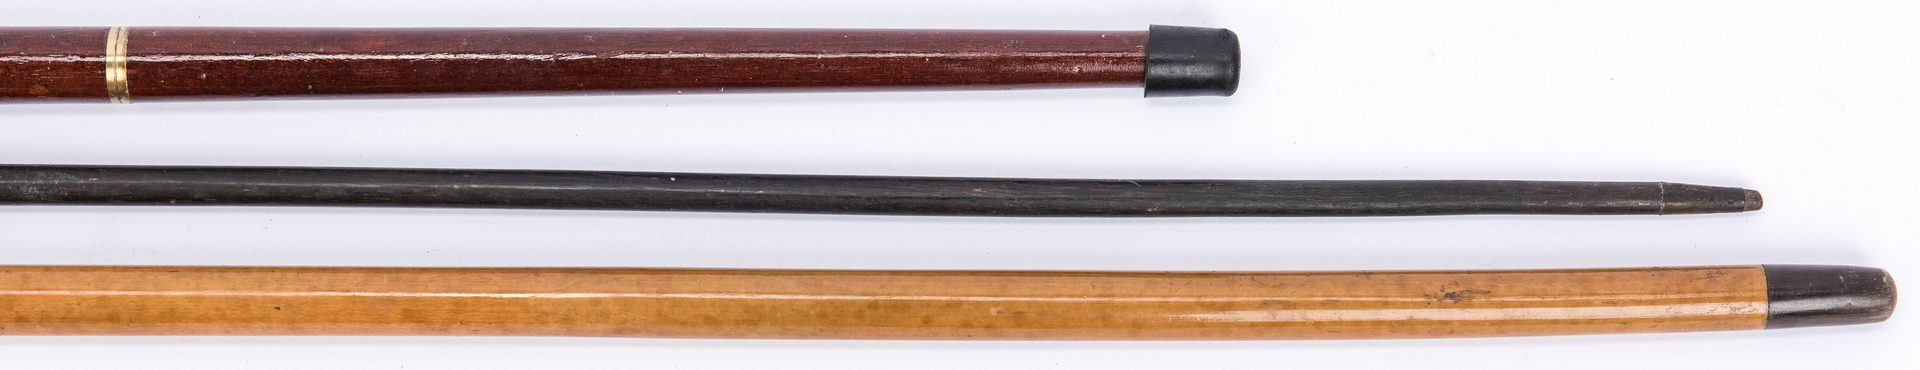 Lot 396: 3 Canes incl. 1st TN Infantry and Sword Cane